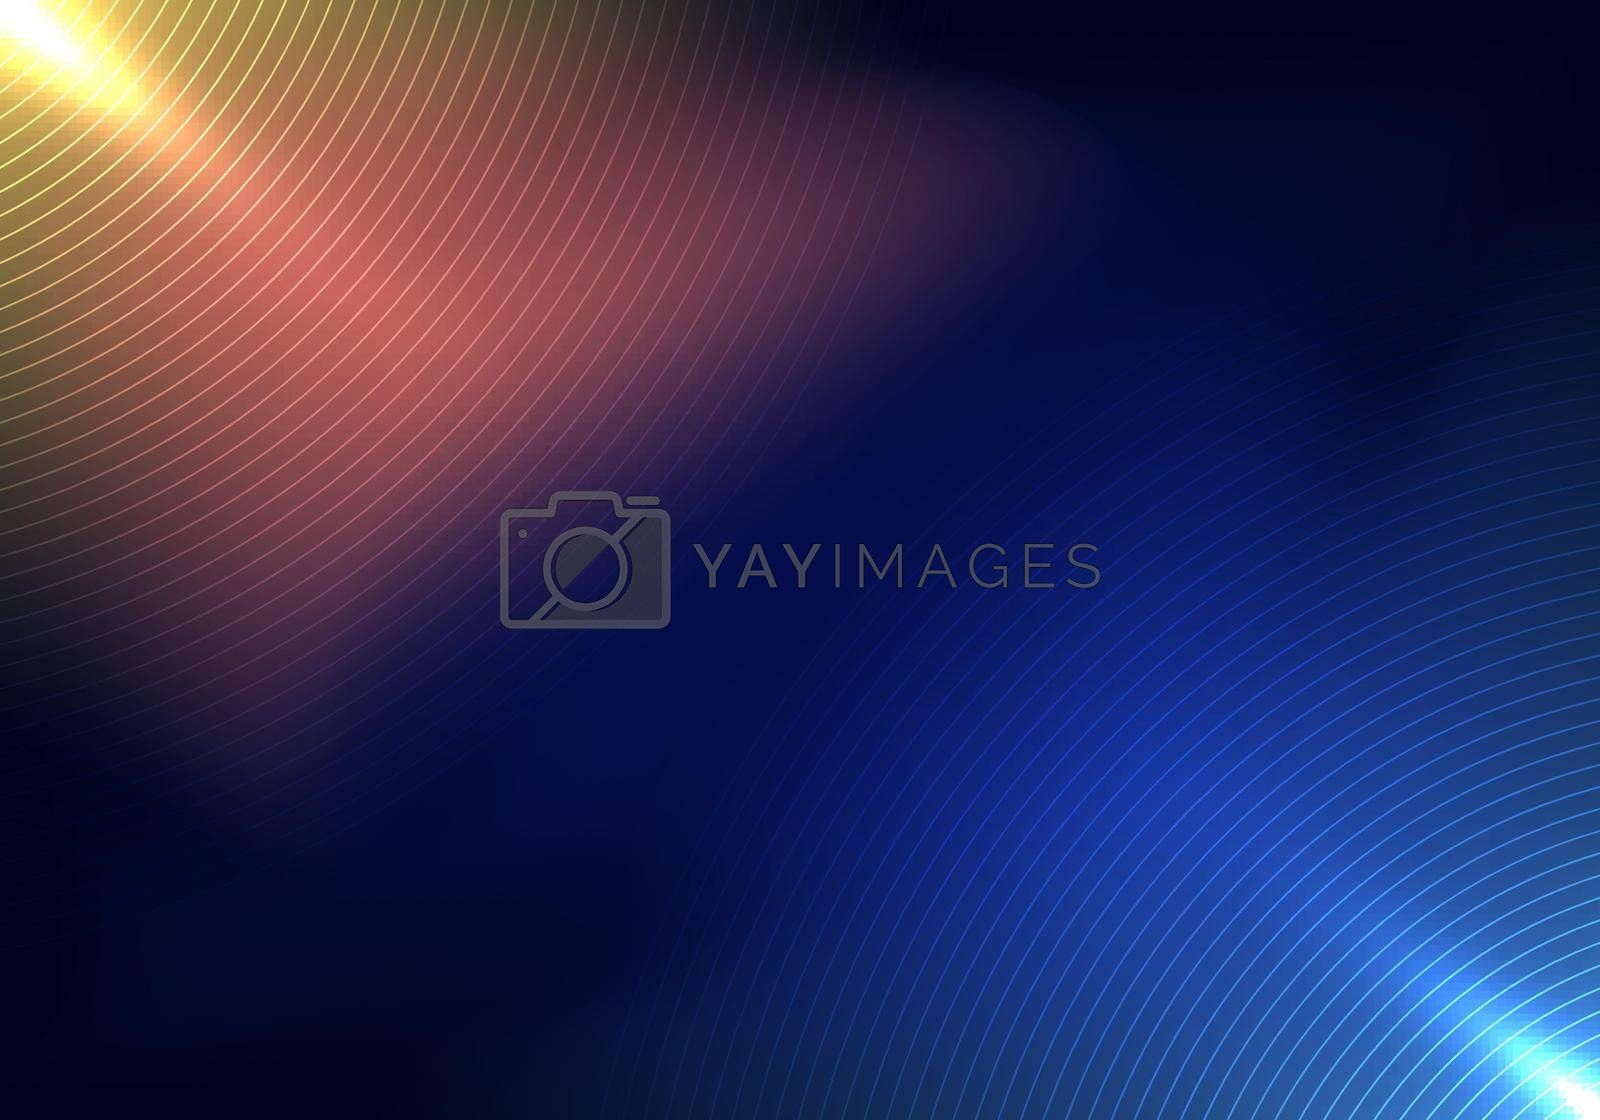 Royalty free image of Abstract technology futuristic concept lighting effect with circles lines pattern on blue background by phochi